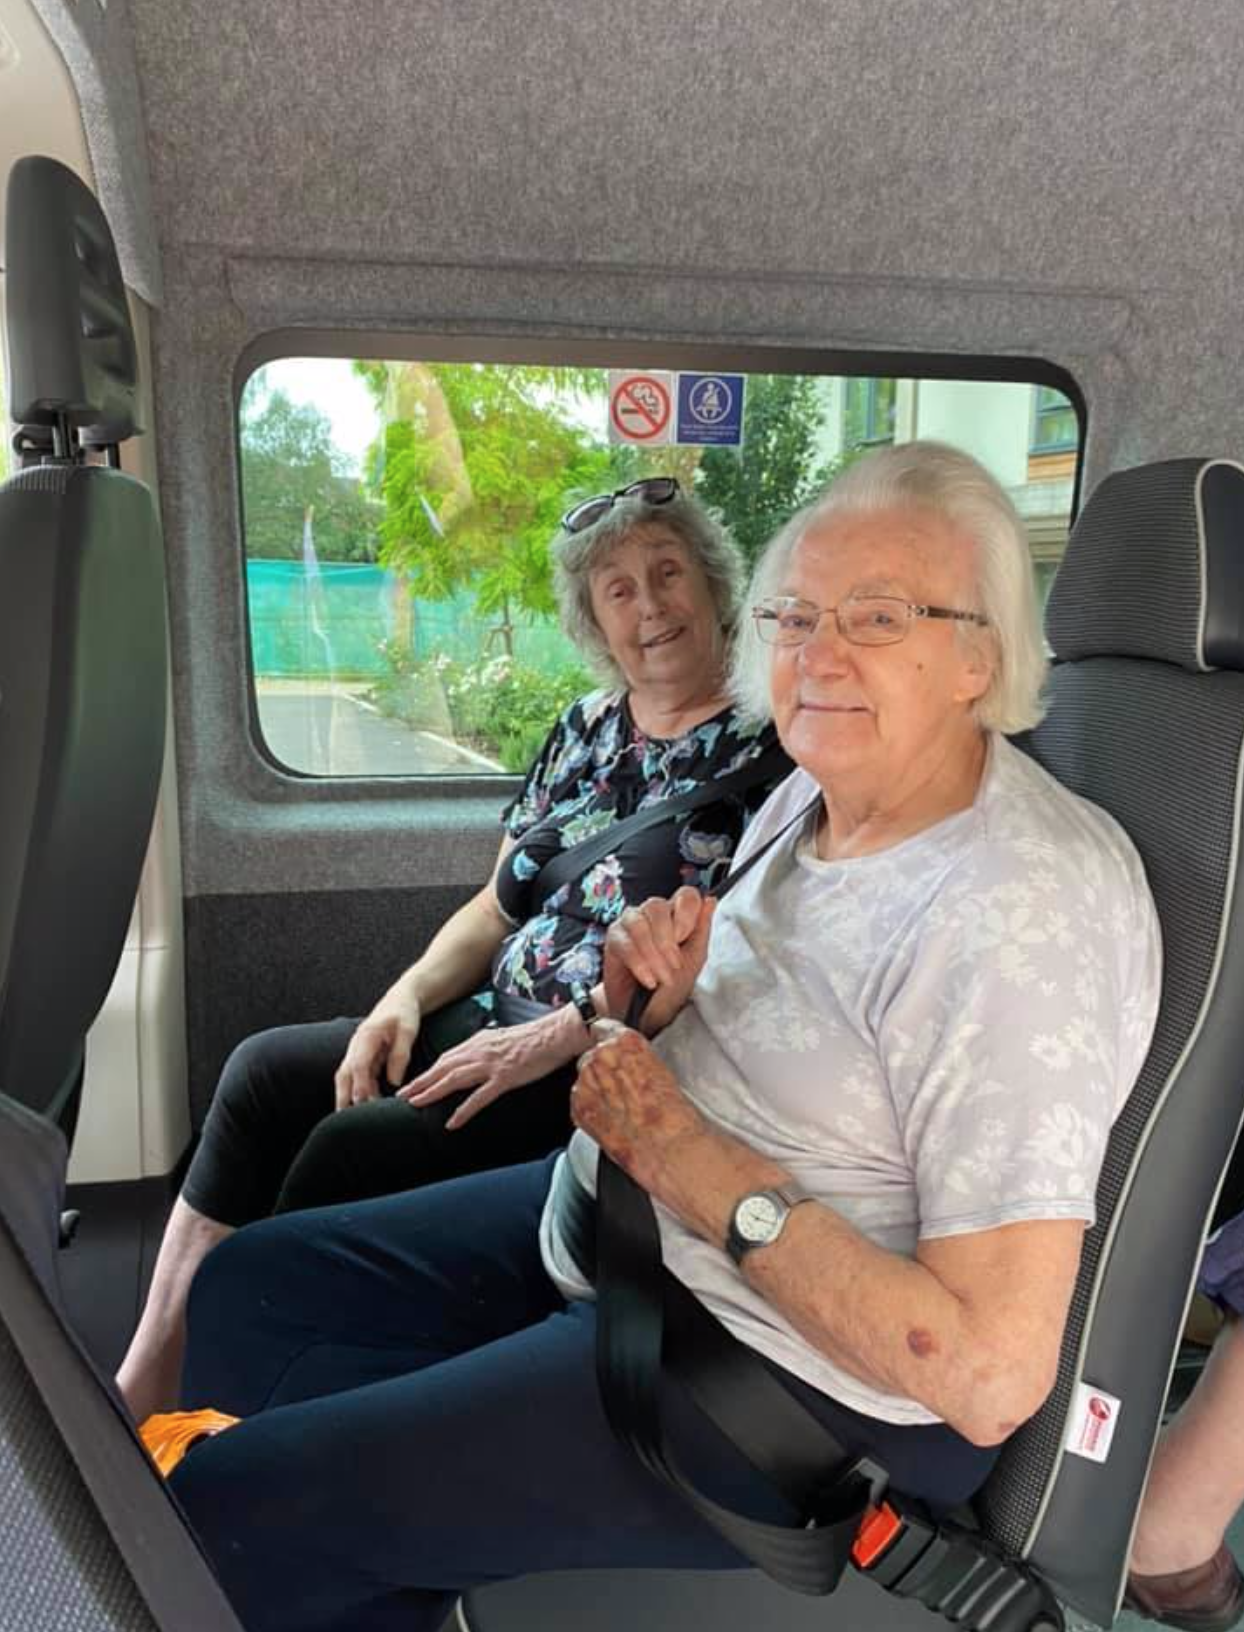 Fairfield residents enjoying COVID safe minibus outings